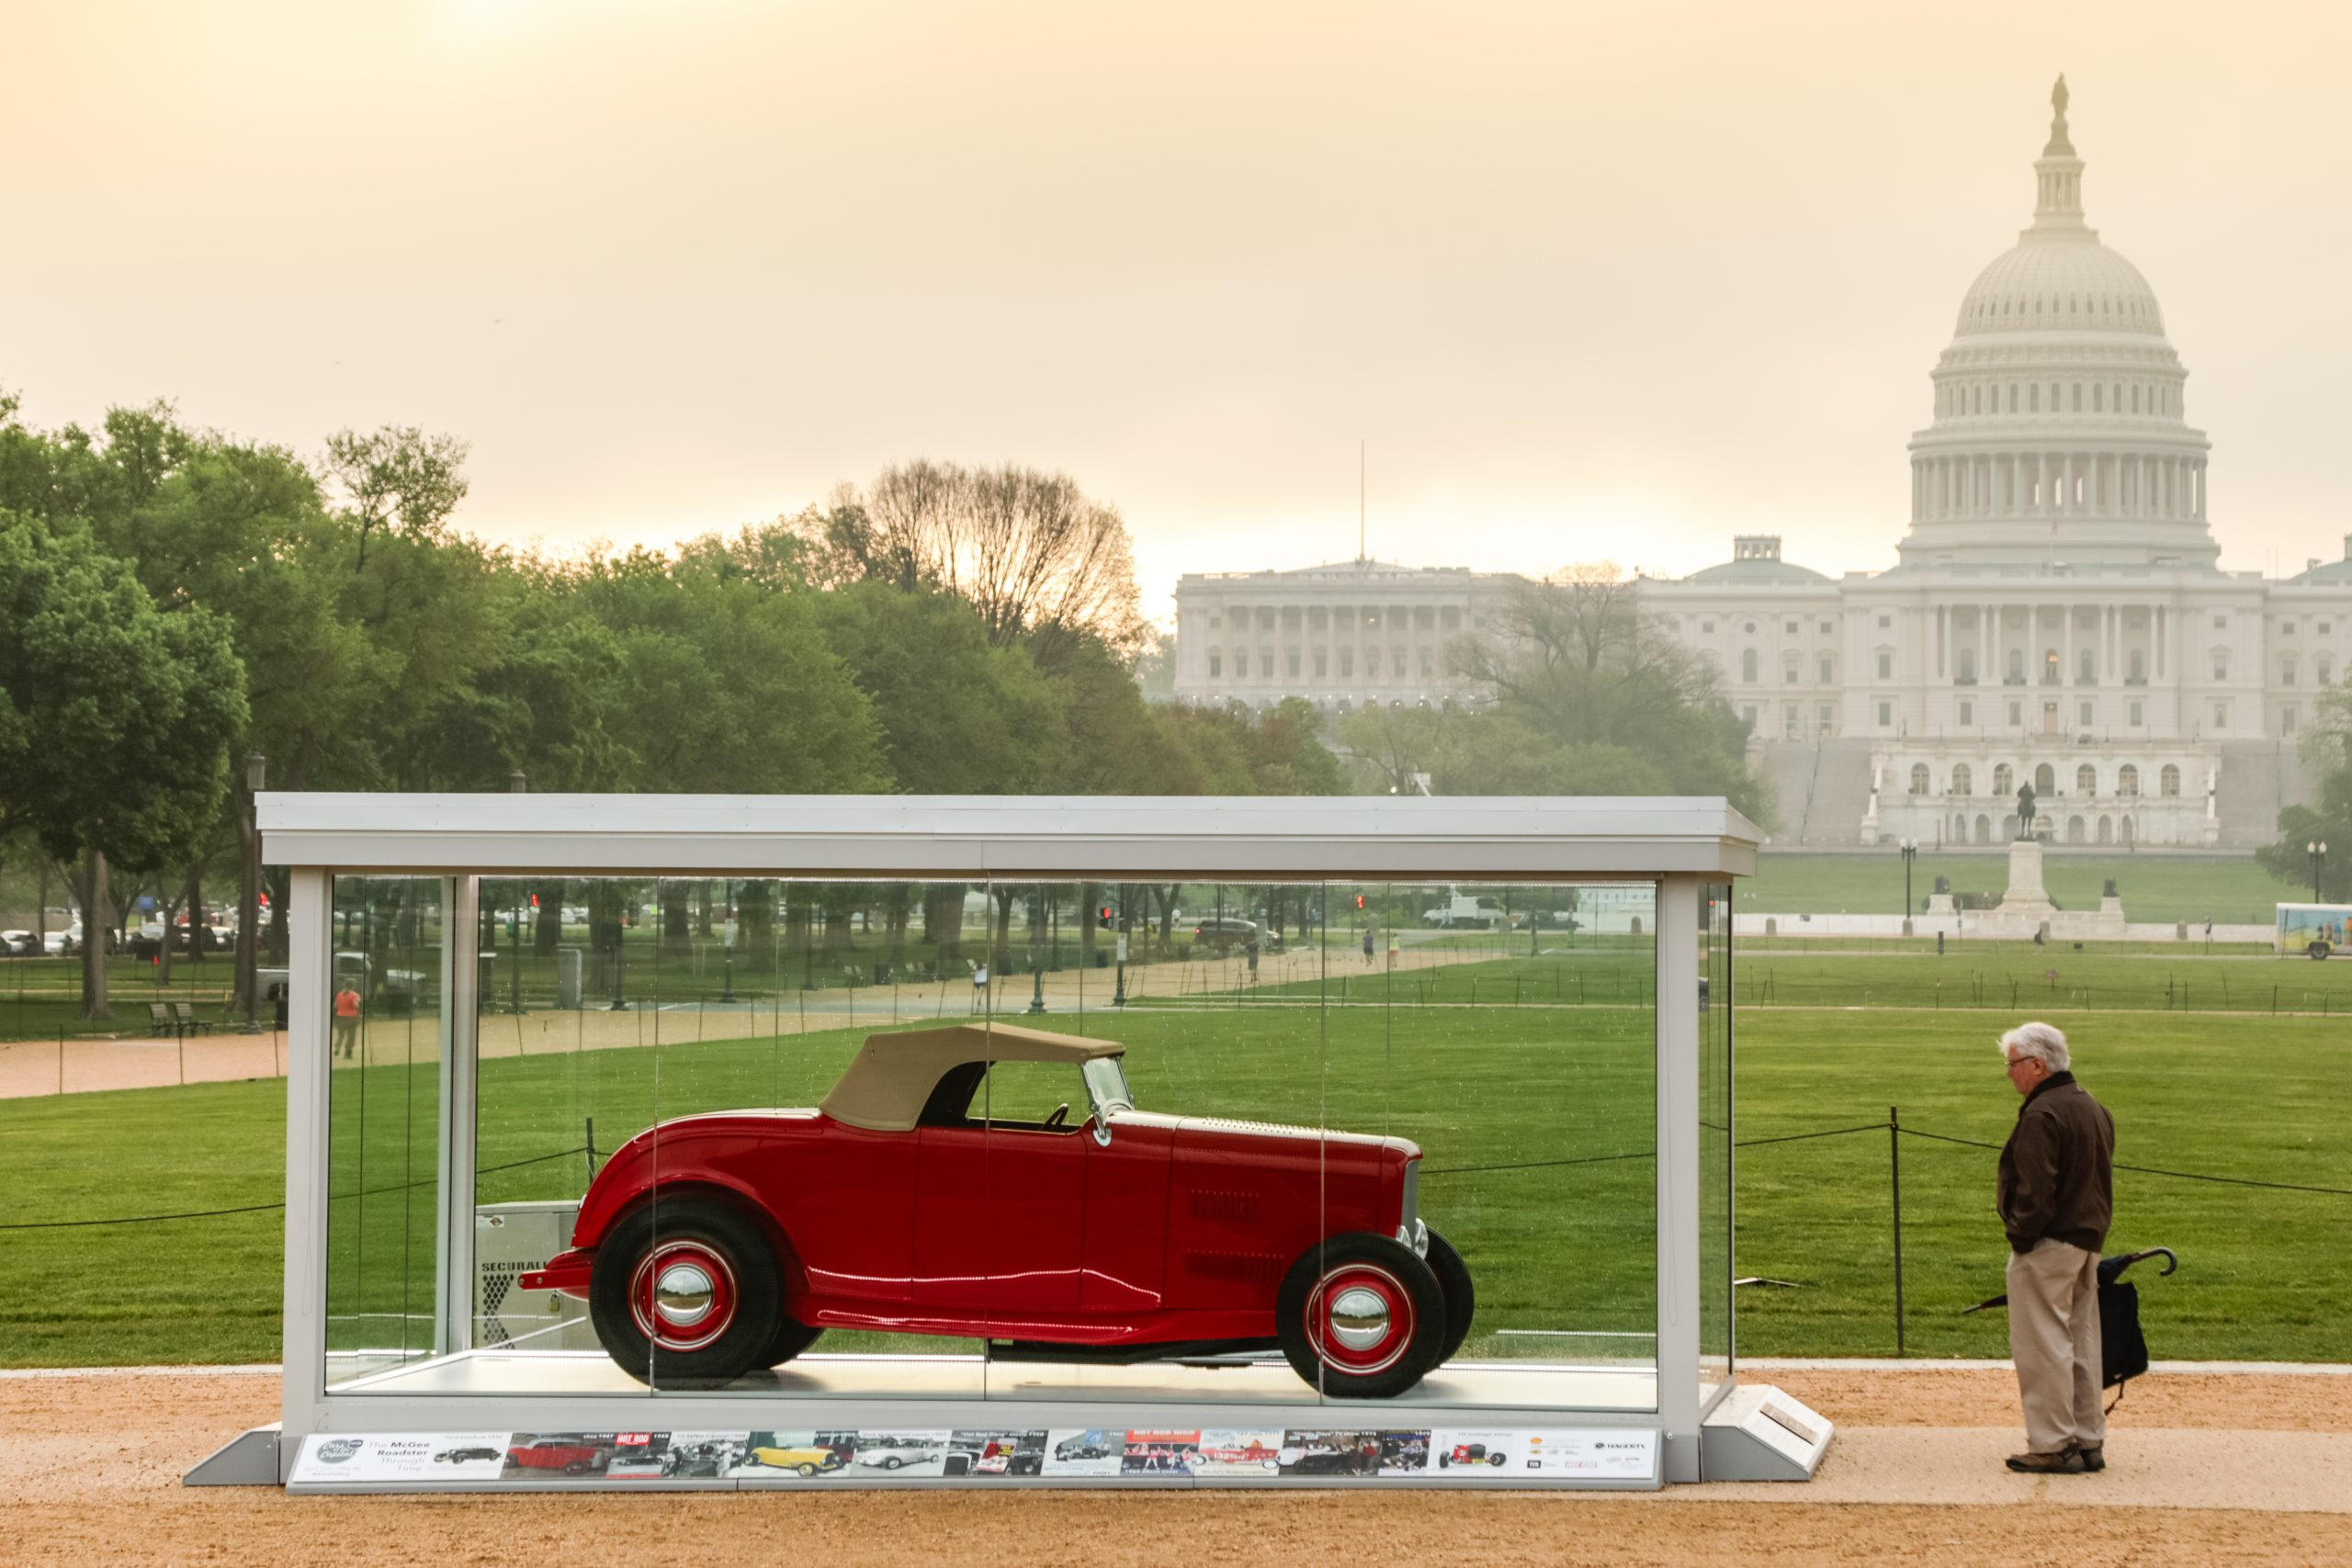 McGee Roadster - 1932 Ford - HVA Cars at the Capital 4